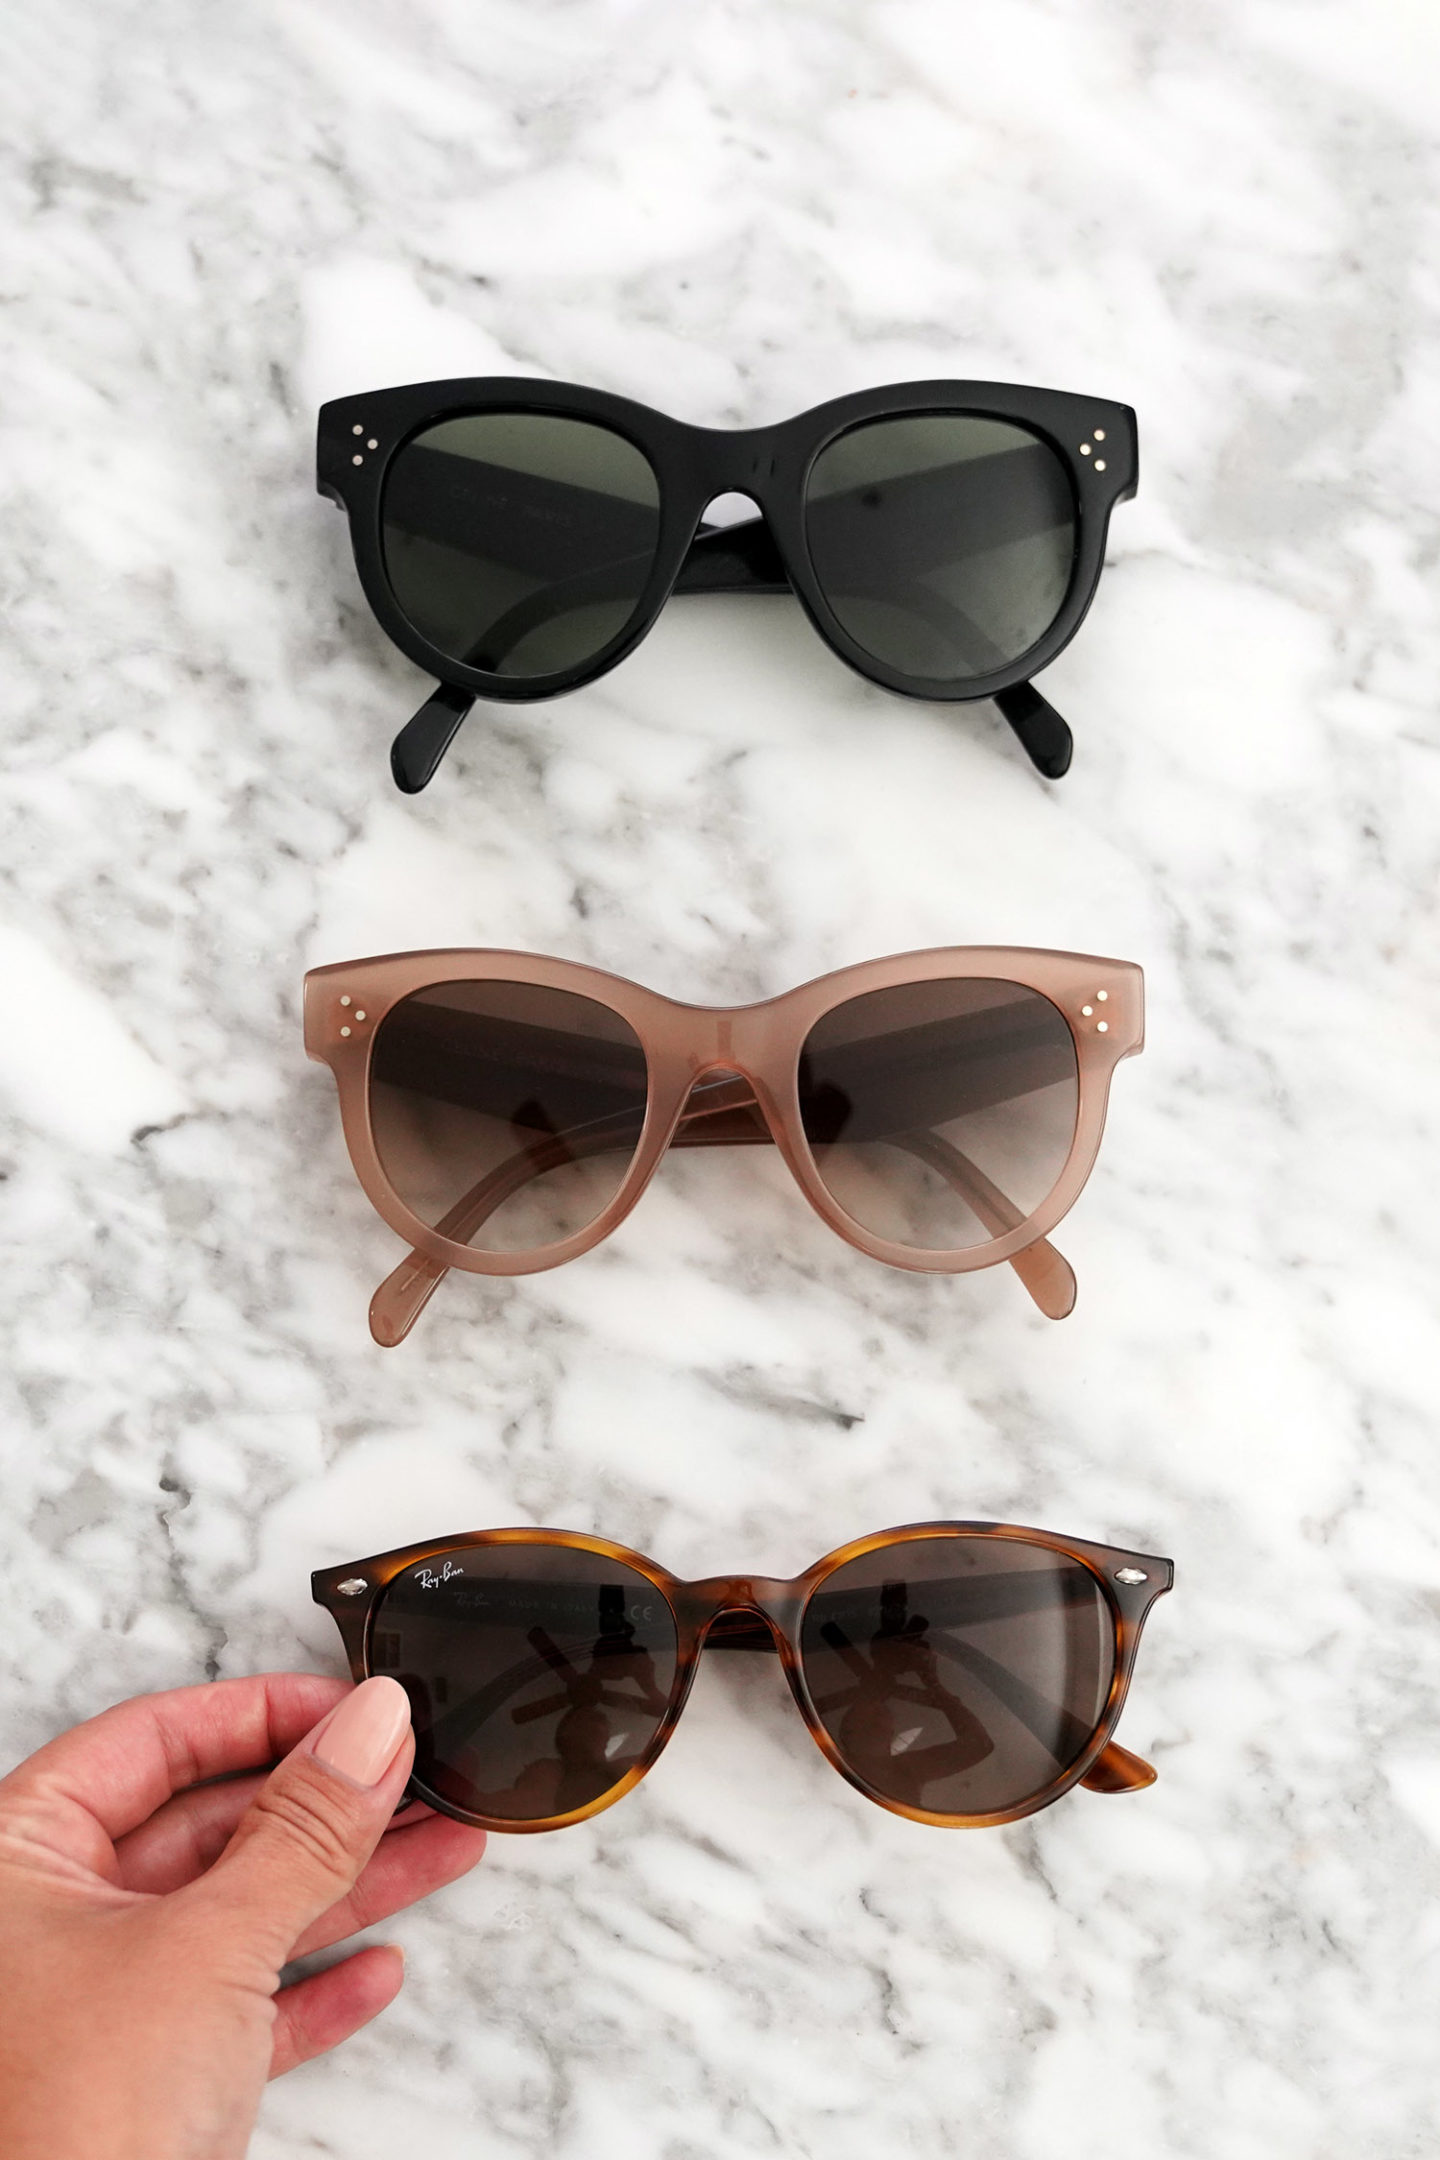 Favorite Sunglasses Celine and Ray-Ban